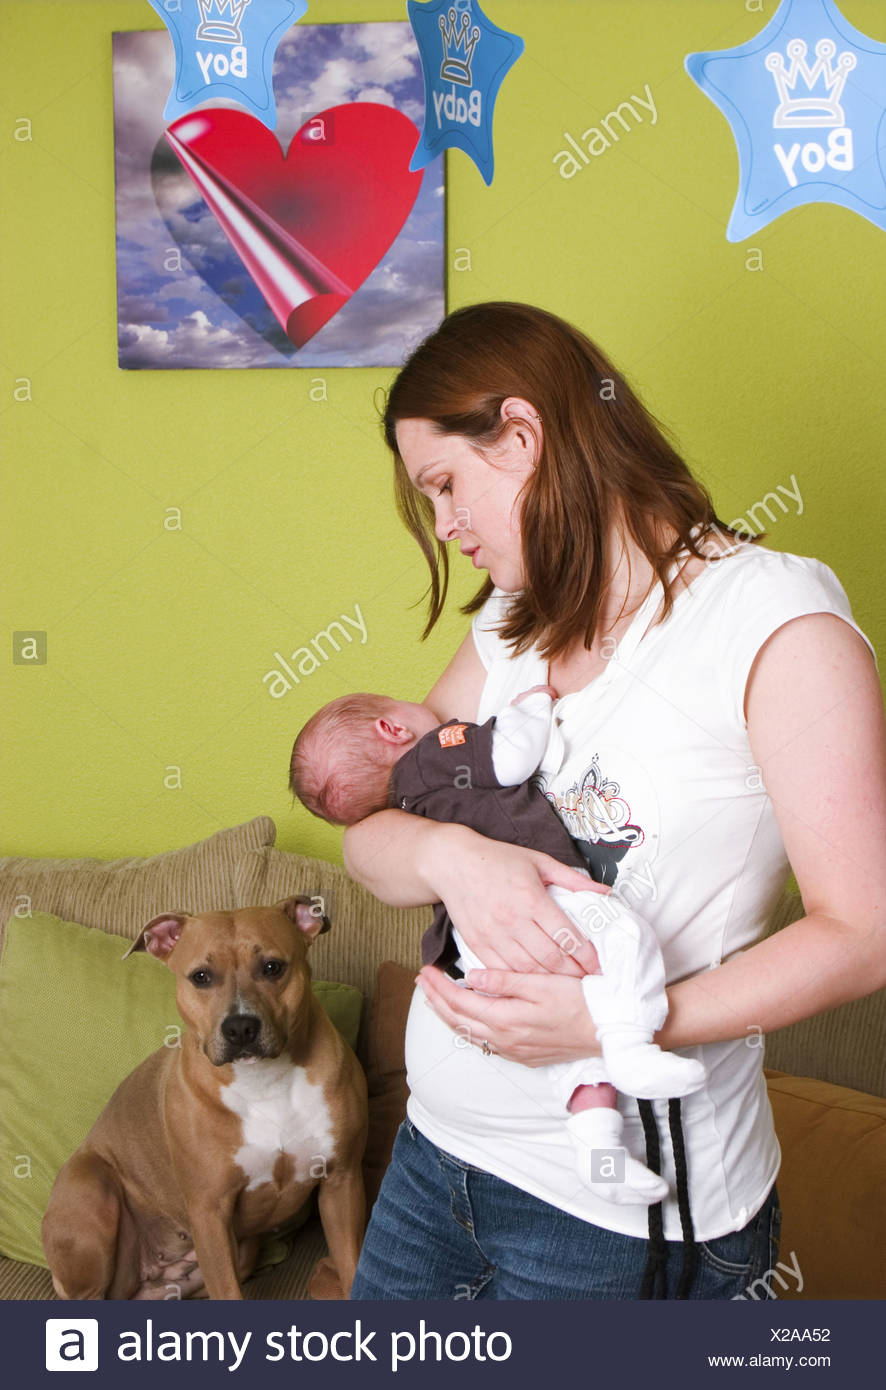 Newborn baby in arms and domestic dog on sofa - Stock Image